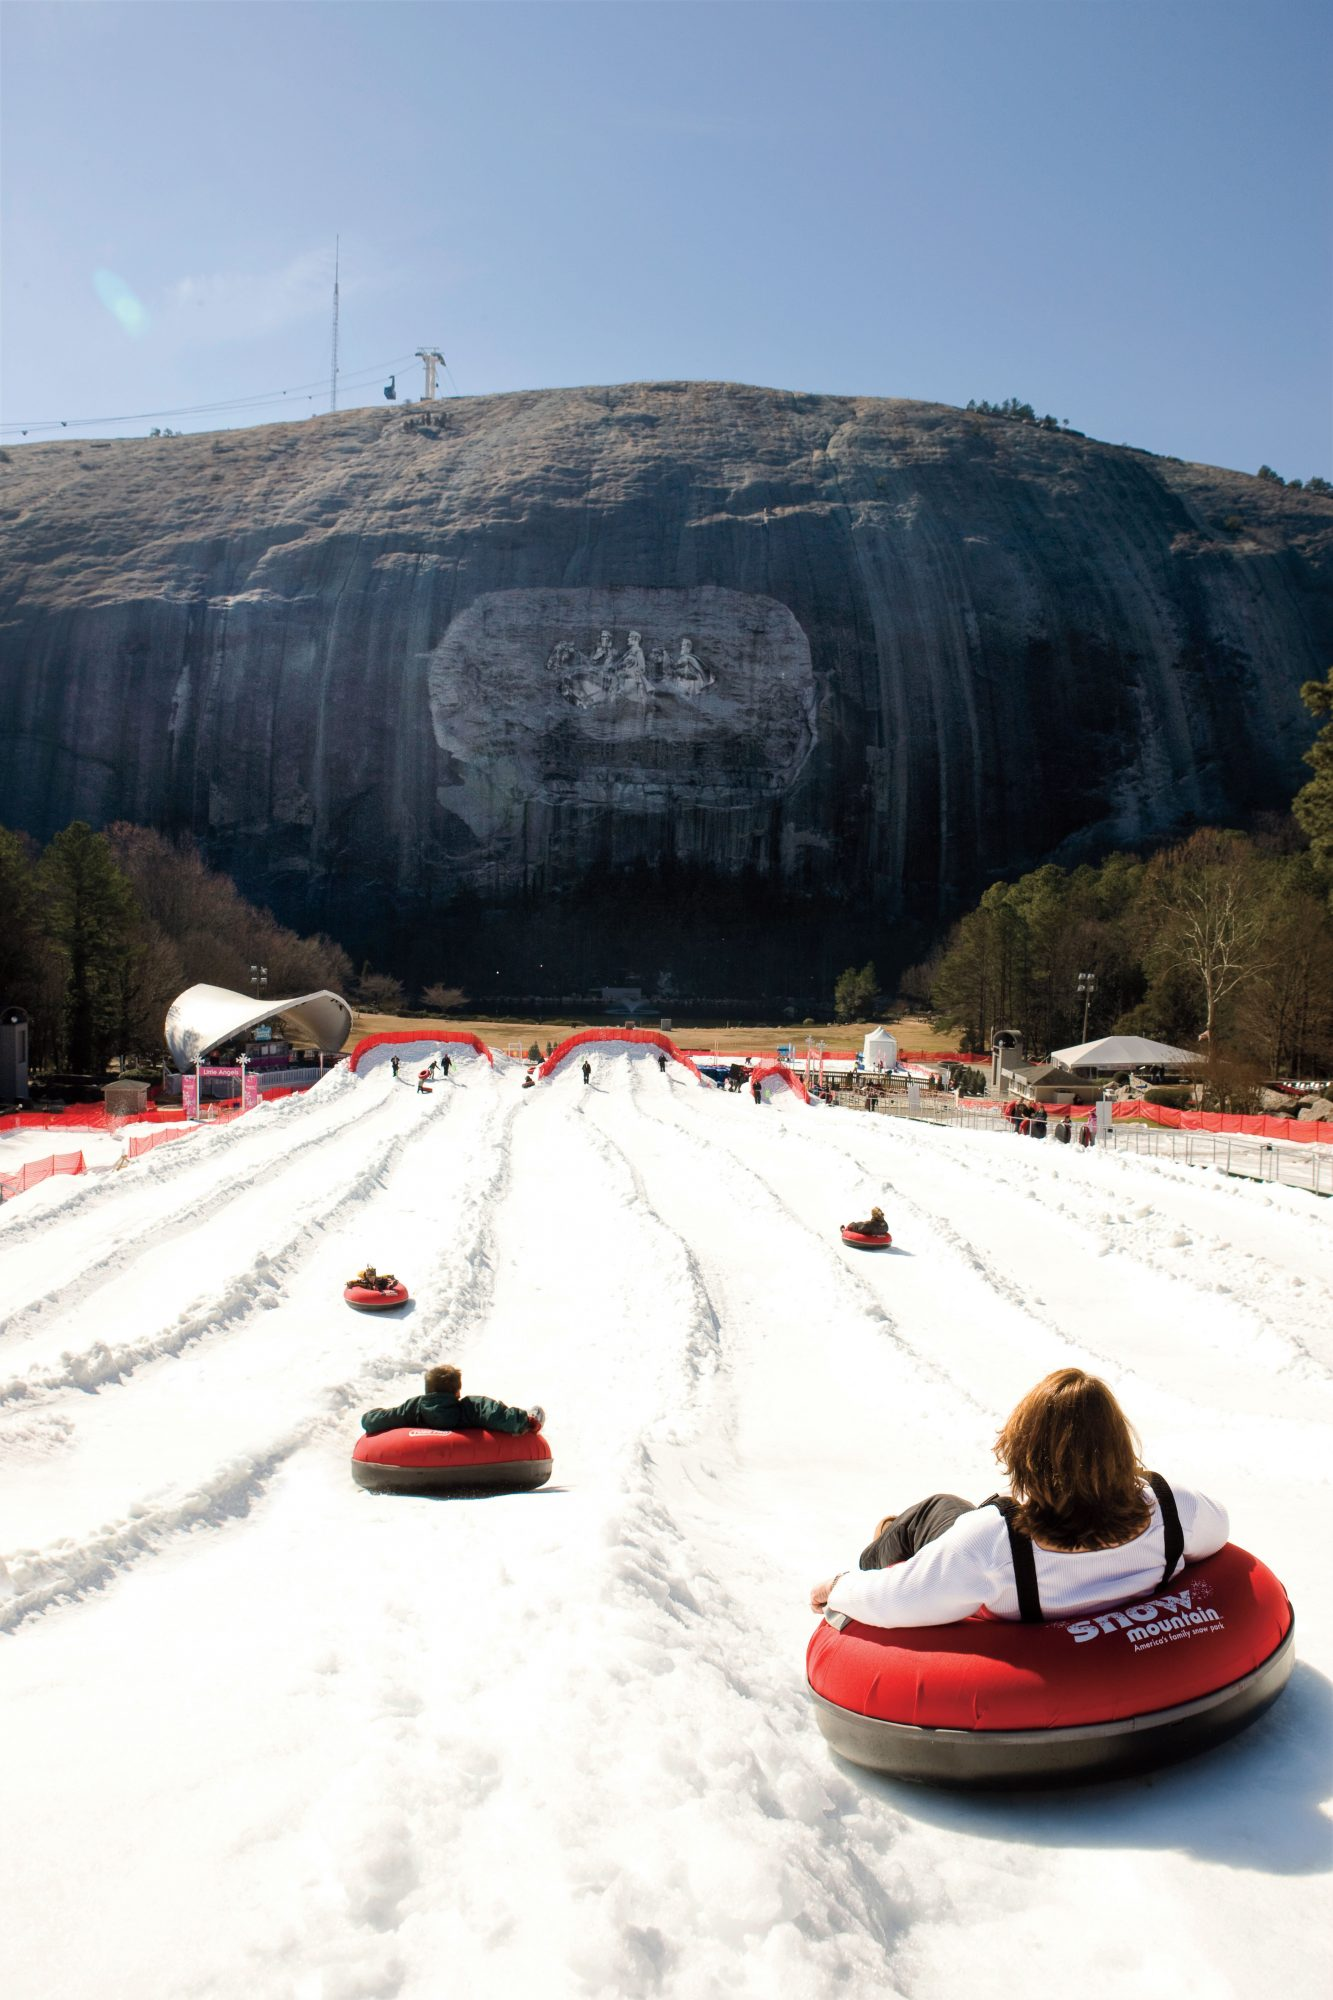 Southern Christmas Vacations: Snow Mountain at Stone Mountain Park